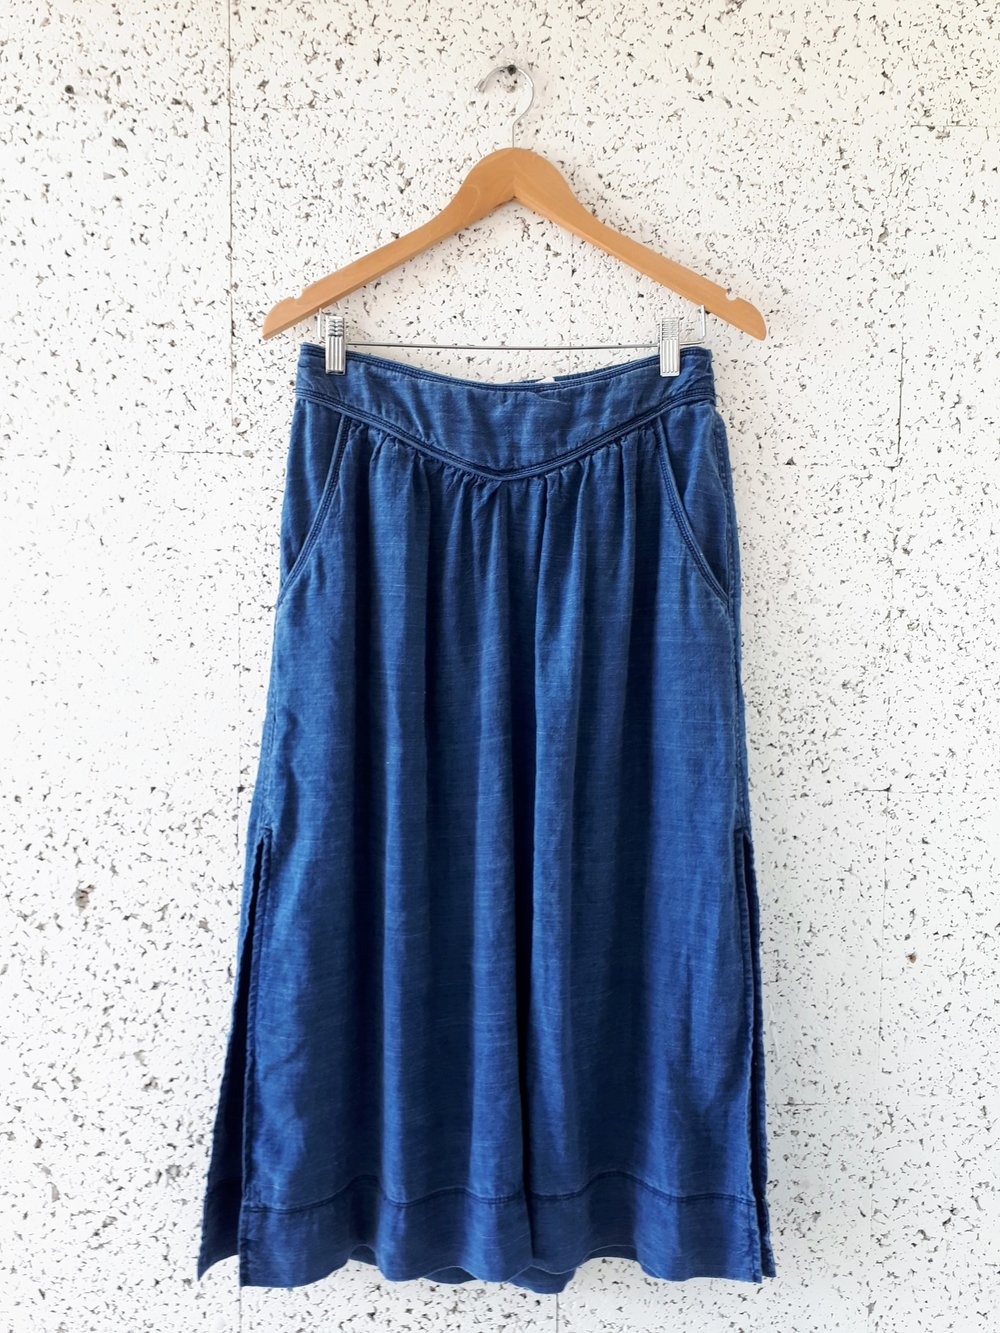 Wilfred skirt; Size M, $40